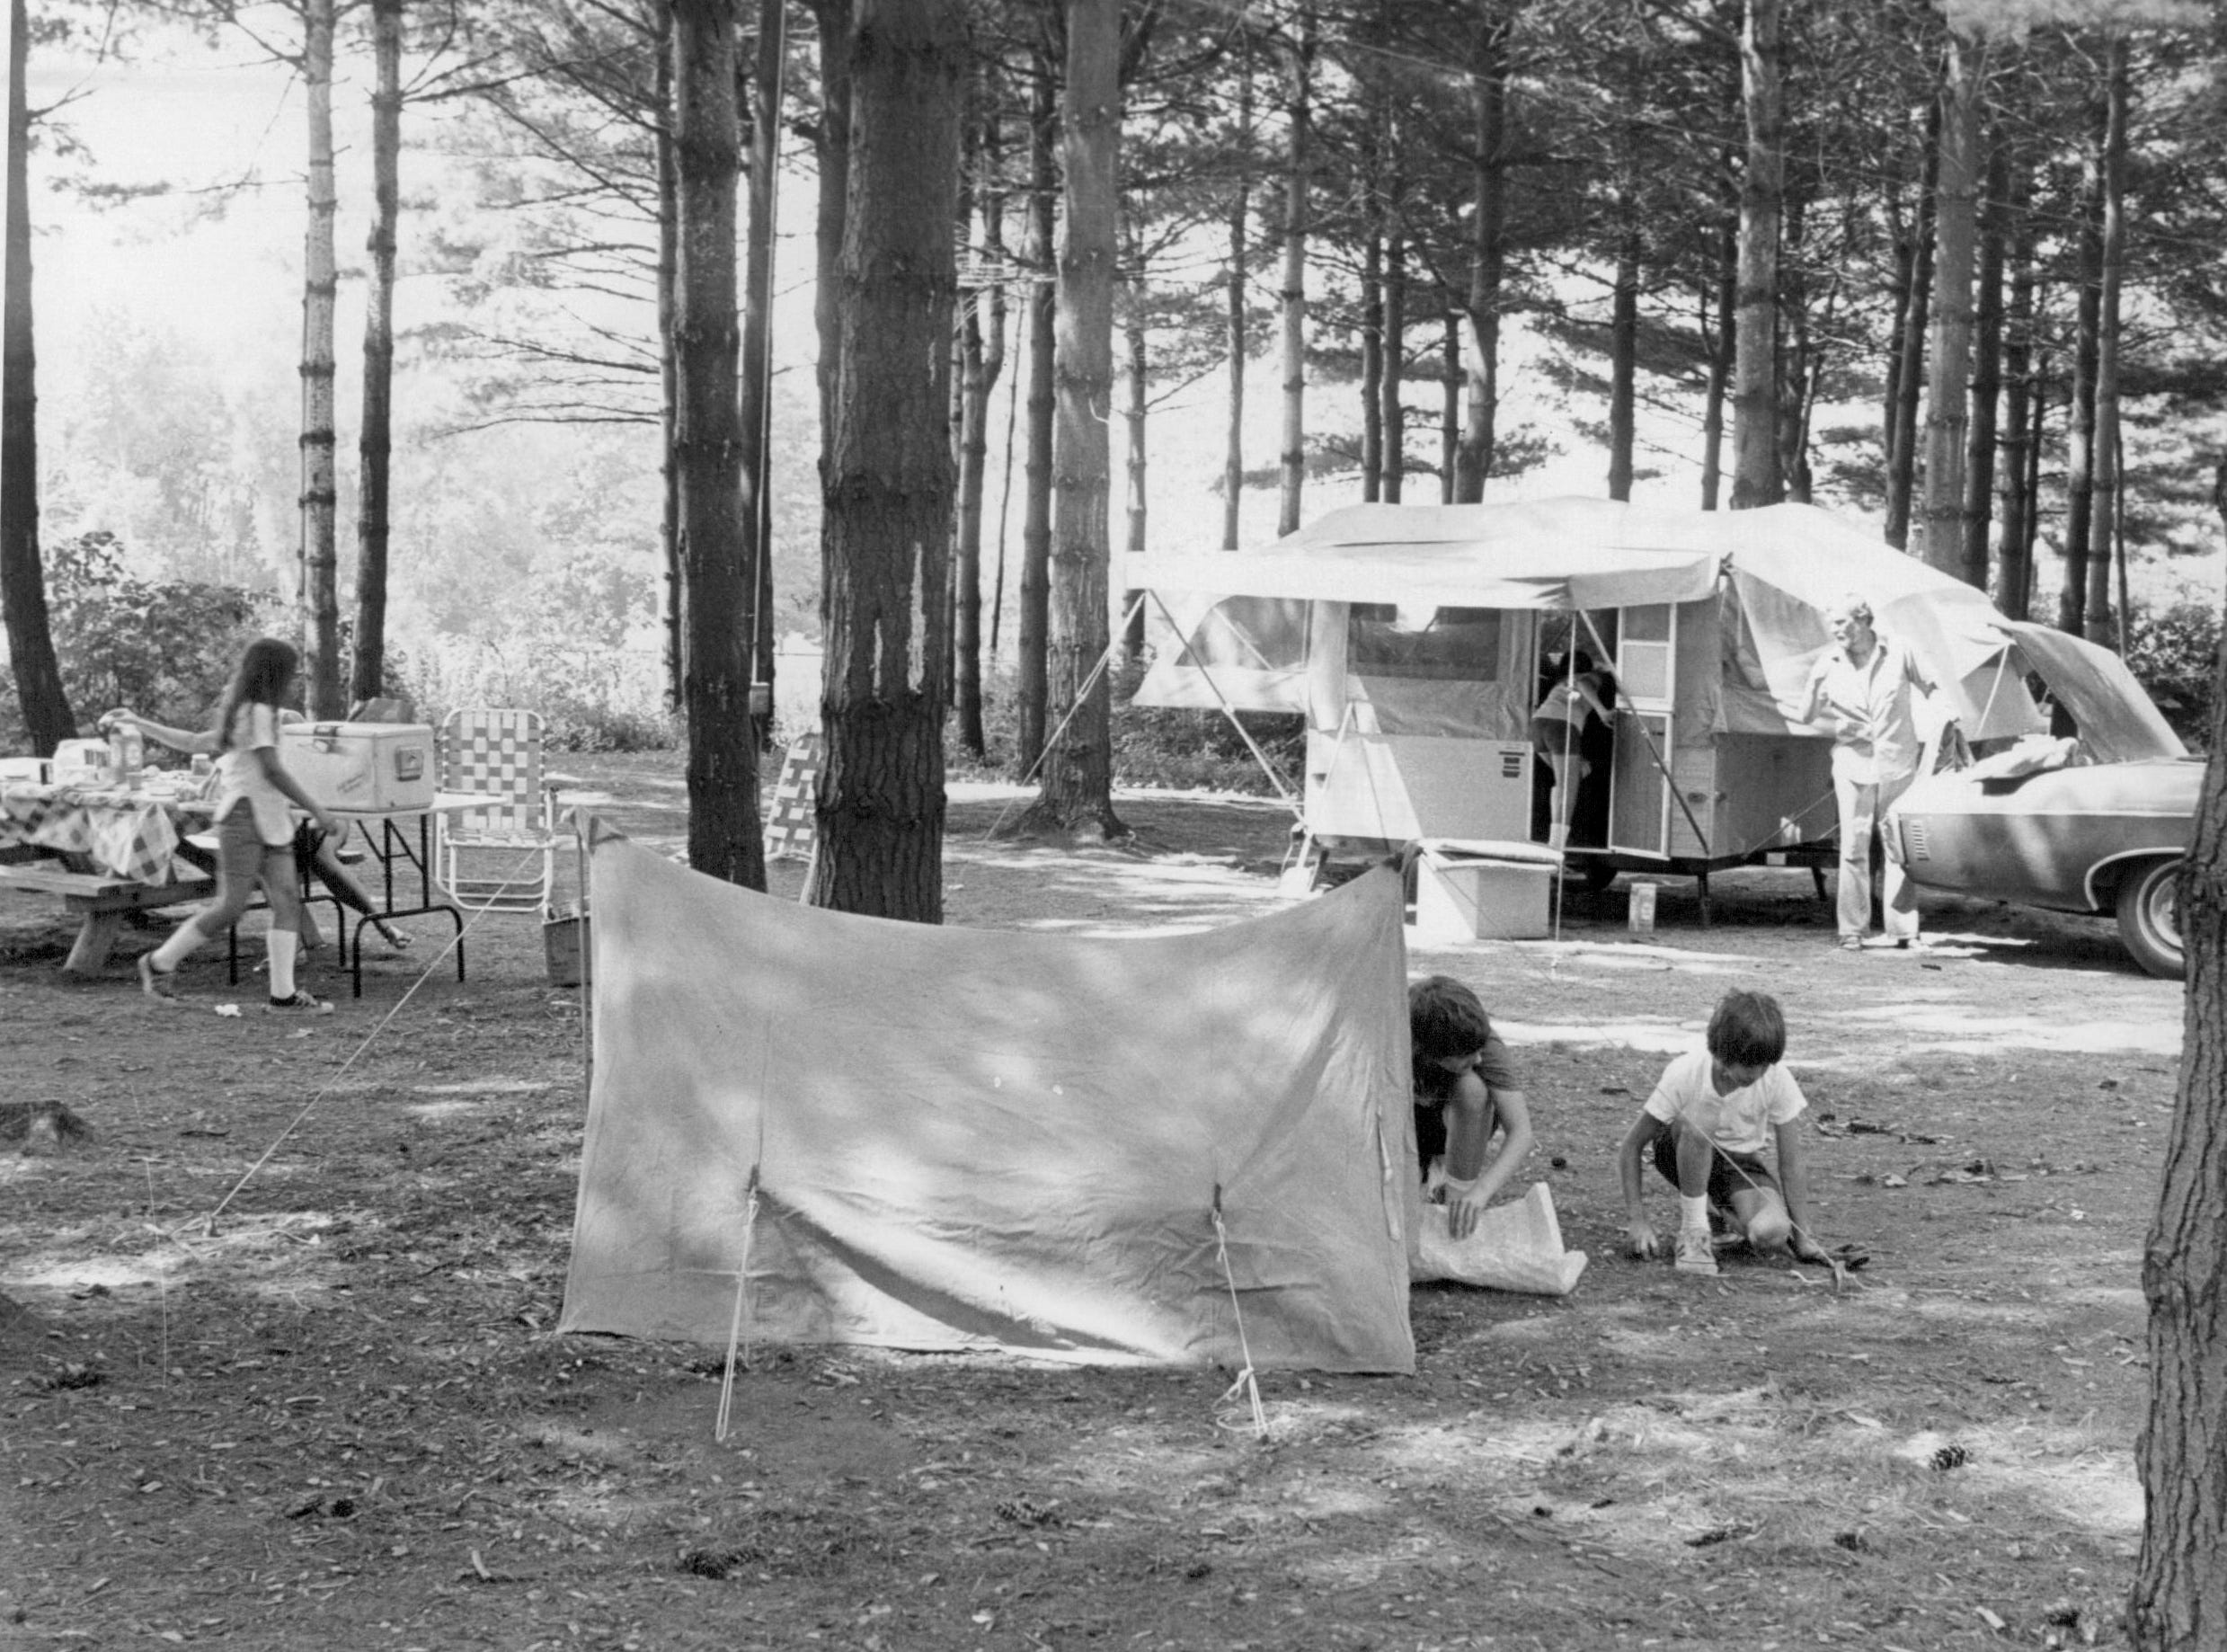 In this photo from 1975, people set up at a camp site at Hamlin Beach State Park.